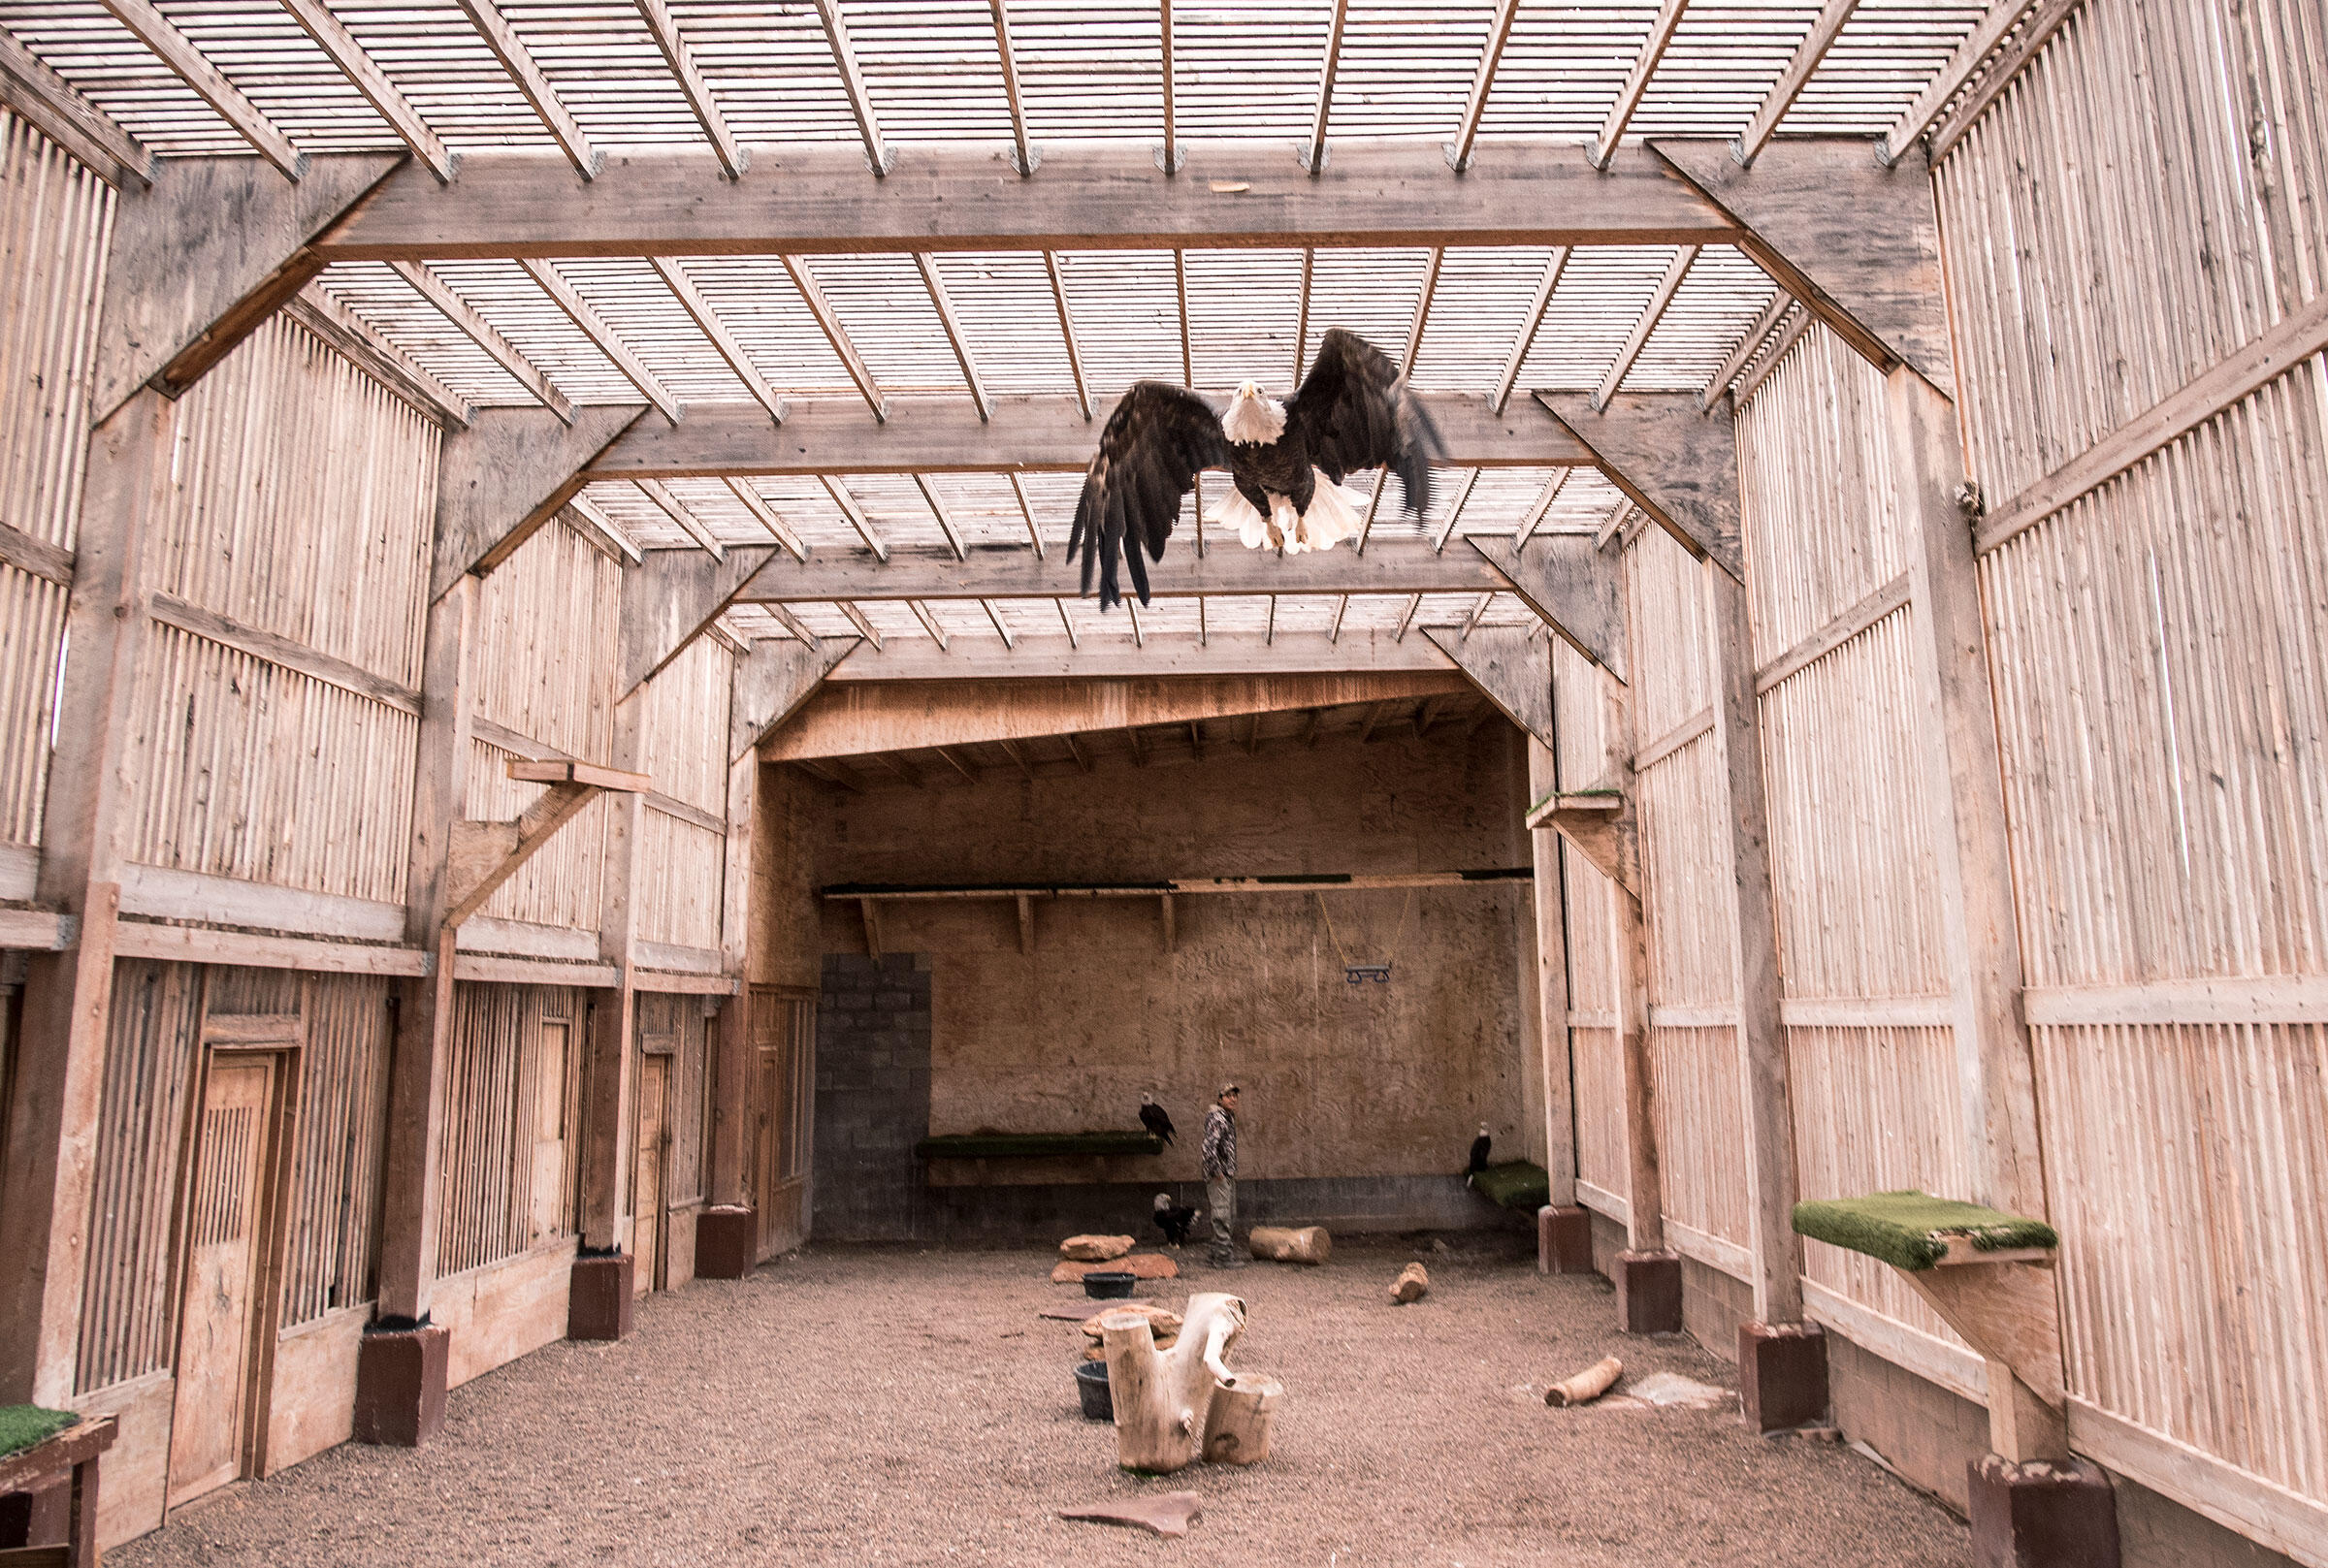 Ten Bald (and eight Golden) Eagles reside in the Zuni Pueblo aviary. Each is given a name and welcomed in a ceremony as a member of the tribe. Dawn Kish